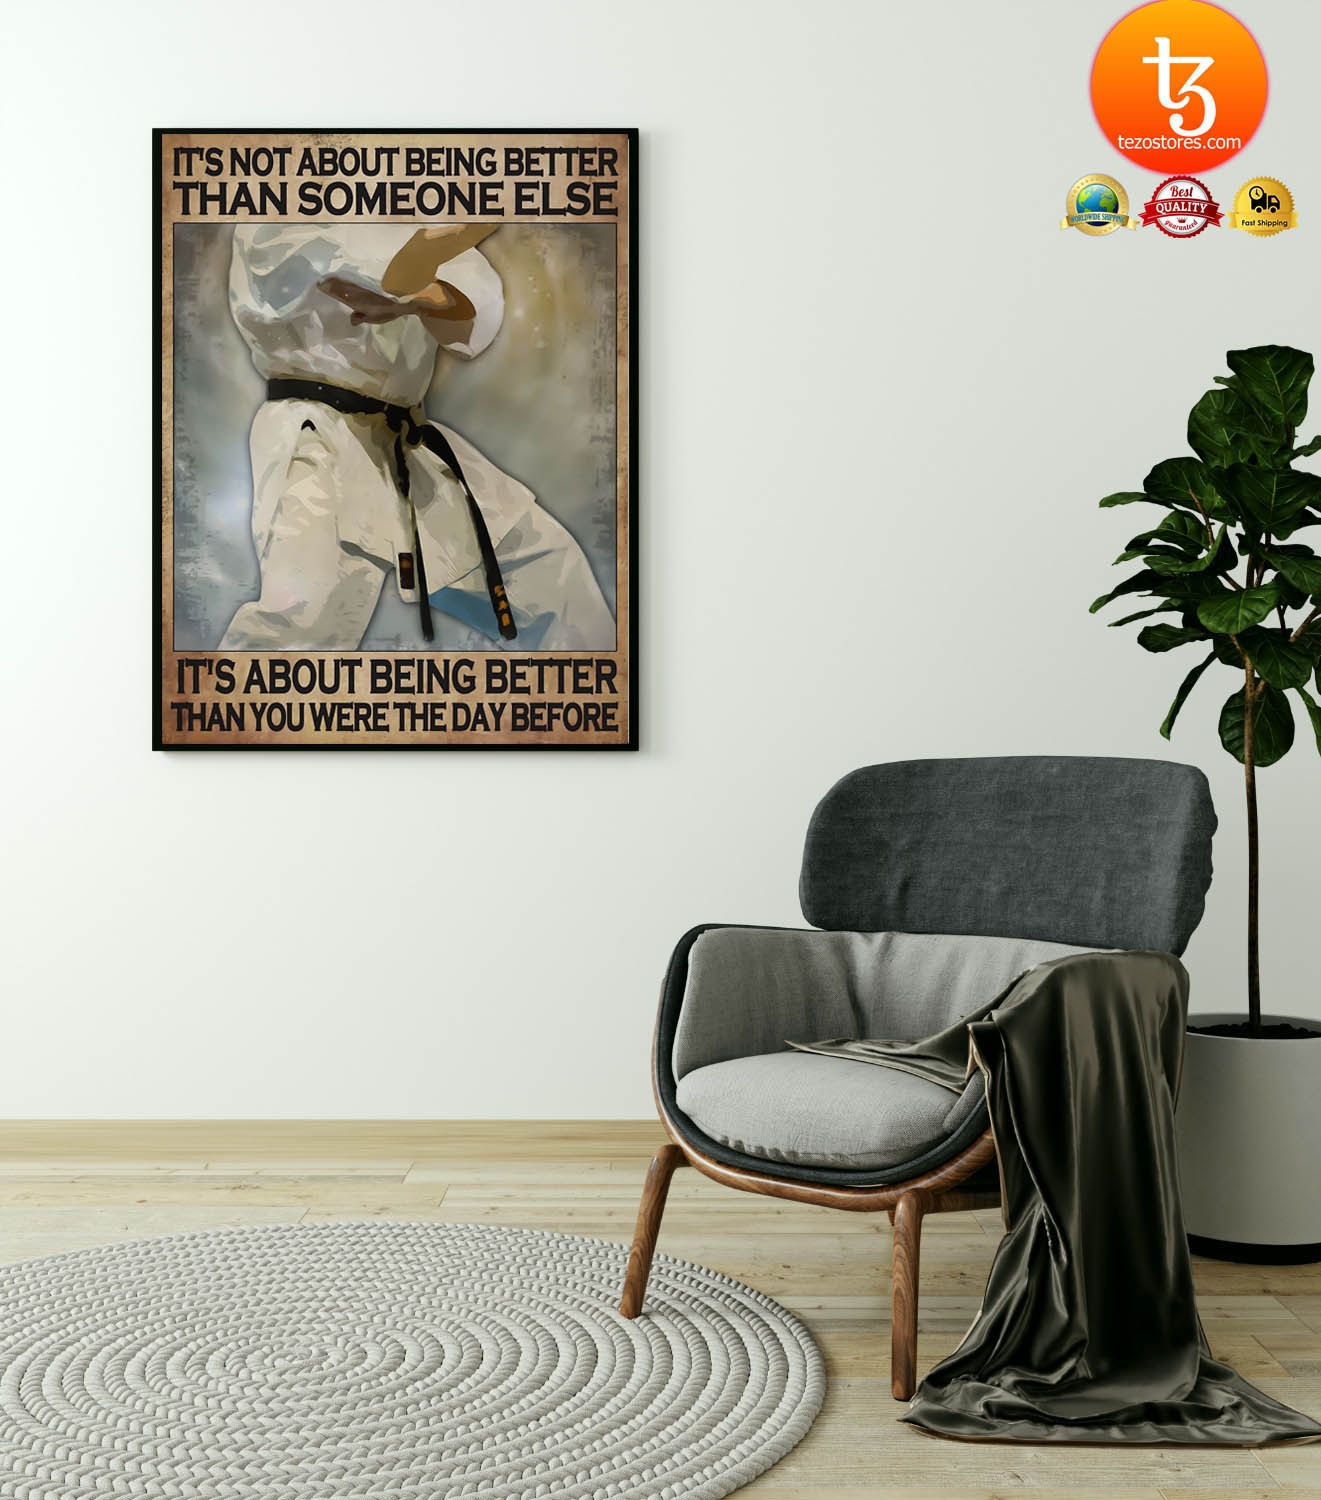 Karate It's not about being better than someone else poster